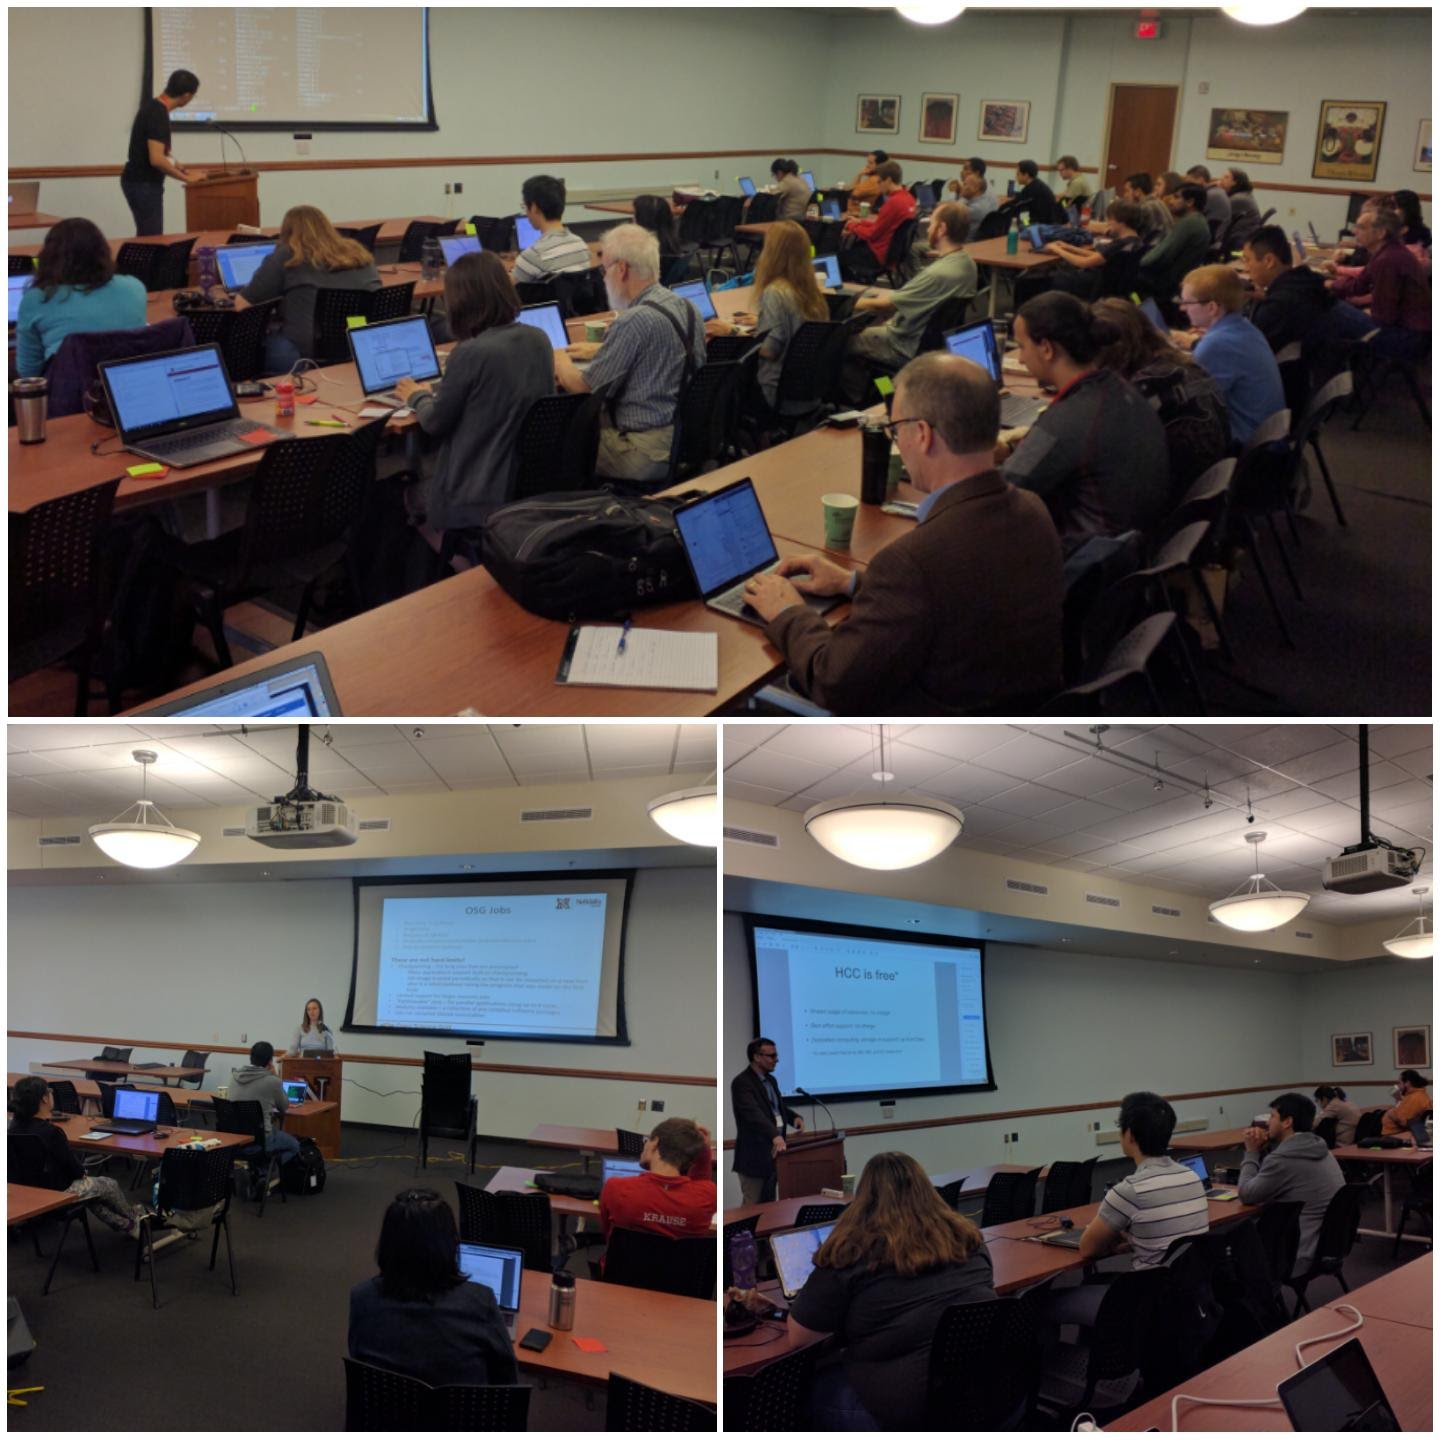 HCC staff scientists will teach researchers how to utilize the high performance computing resources offered by the Holland Computing Center through live coding examples and hands-on exercises at the HCC Fall Kickstart on October 15 & 16.